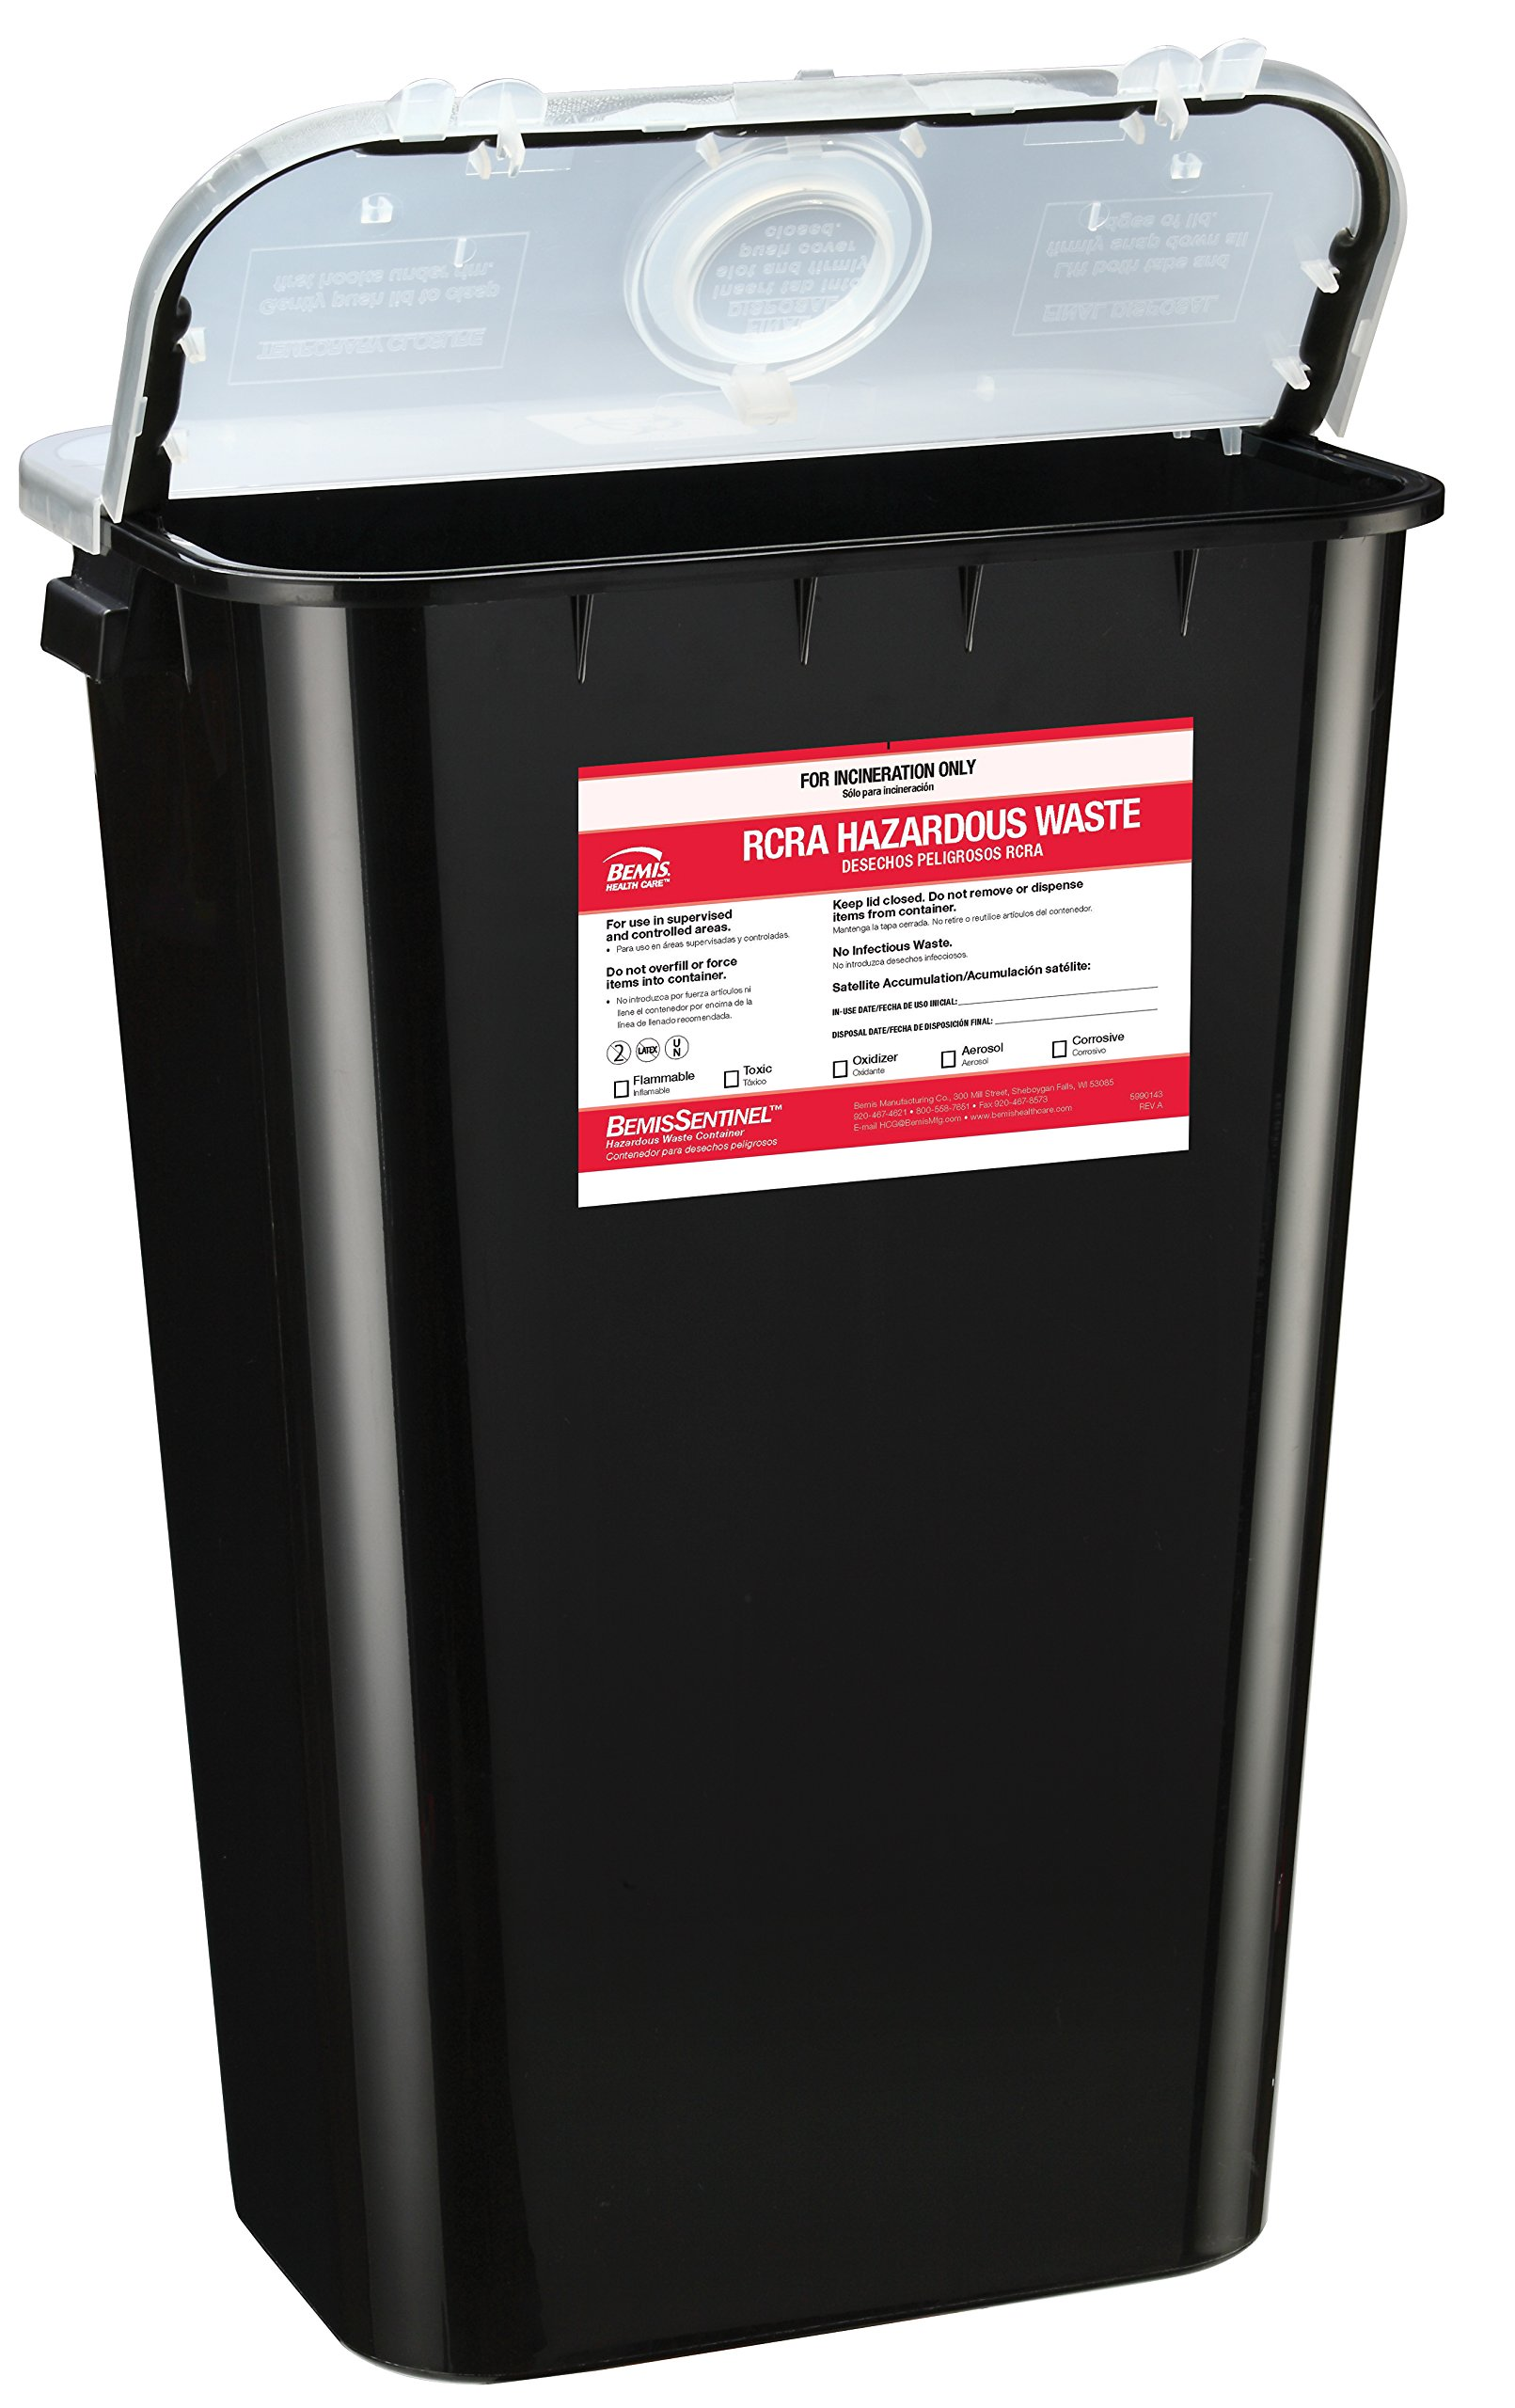 Bemis Healthcare 5011070-6 11 gal RCRA Hazardous Chemical Waste Container, Black (Pack of 6)